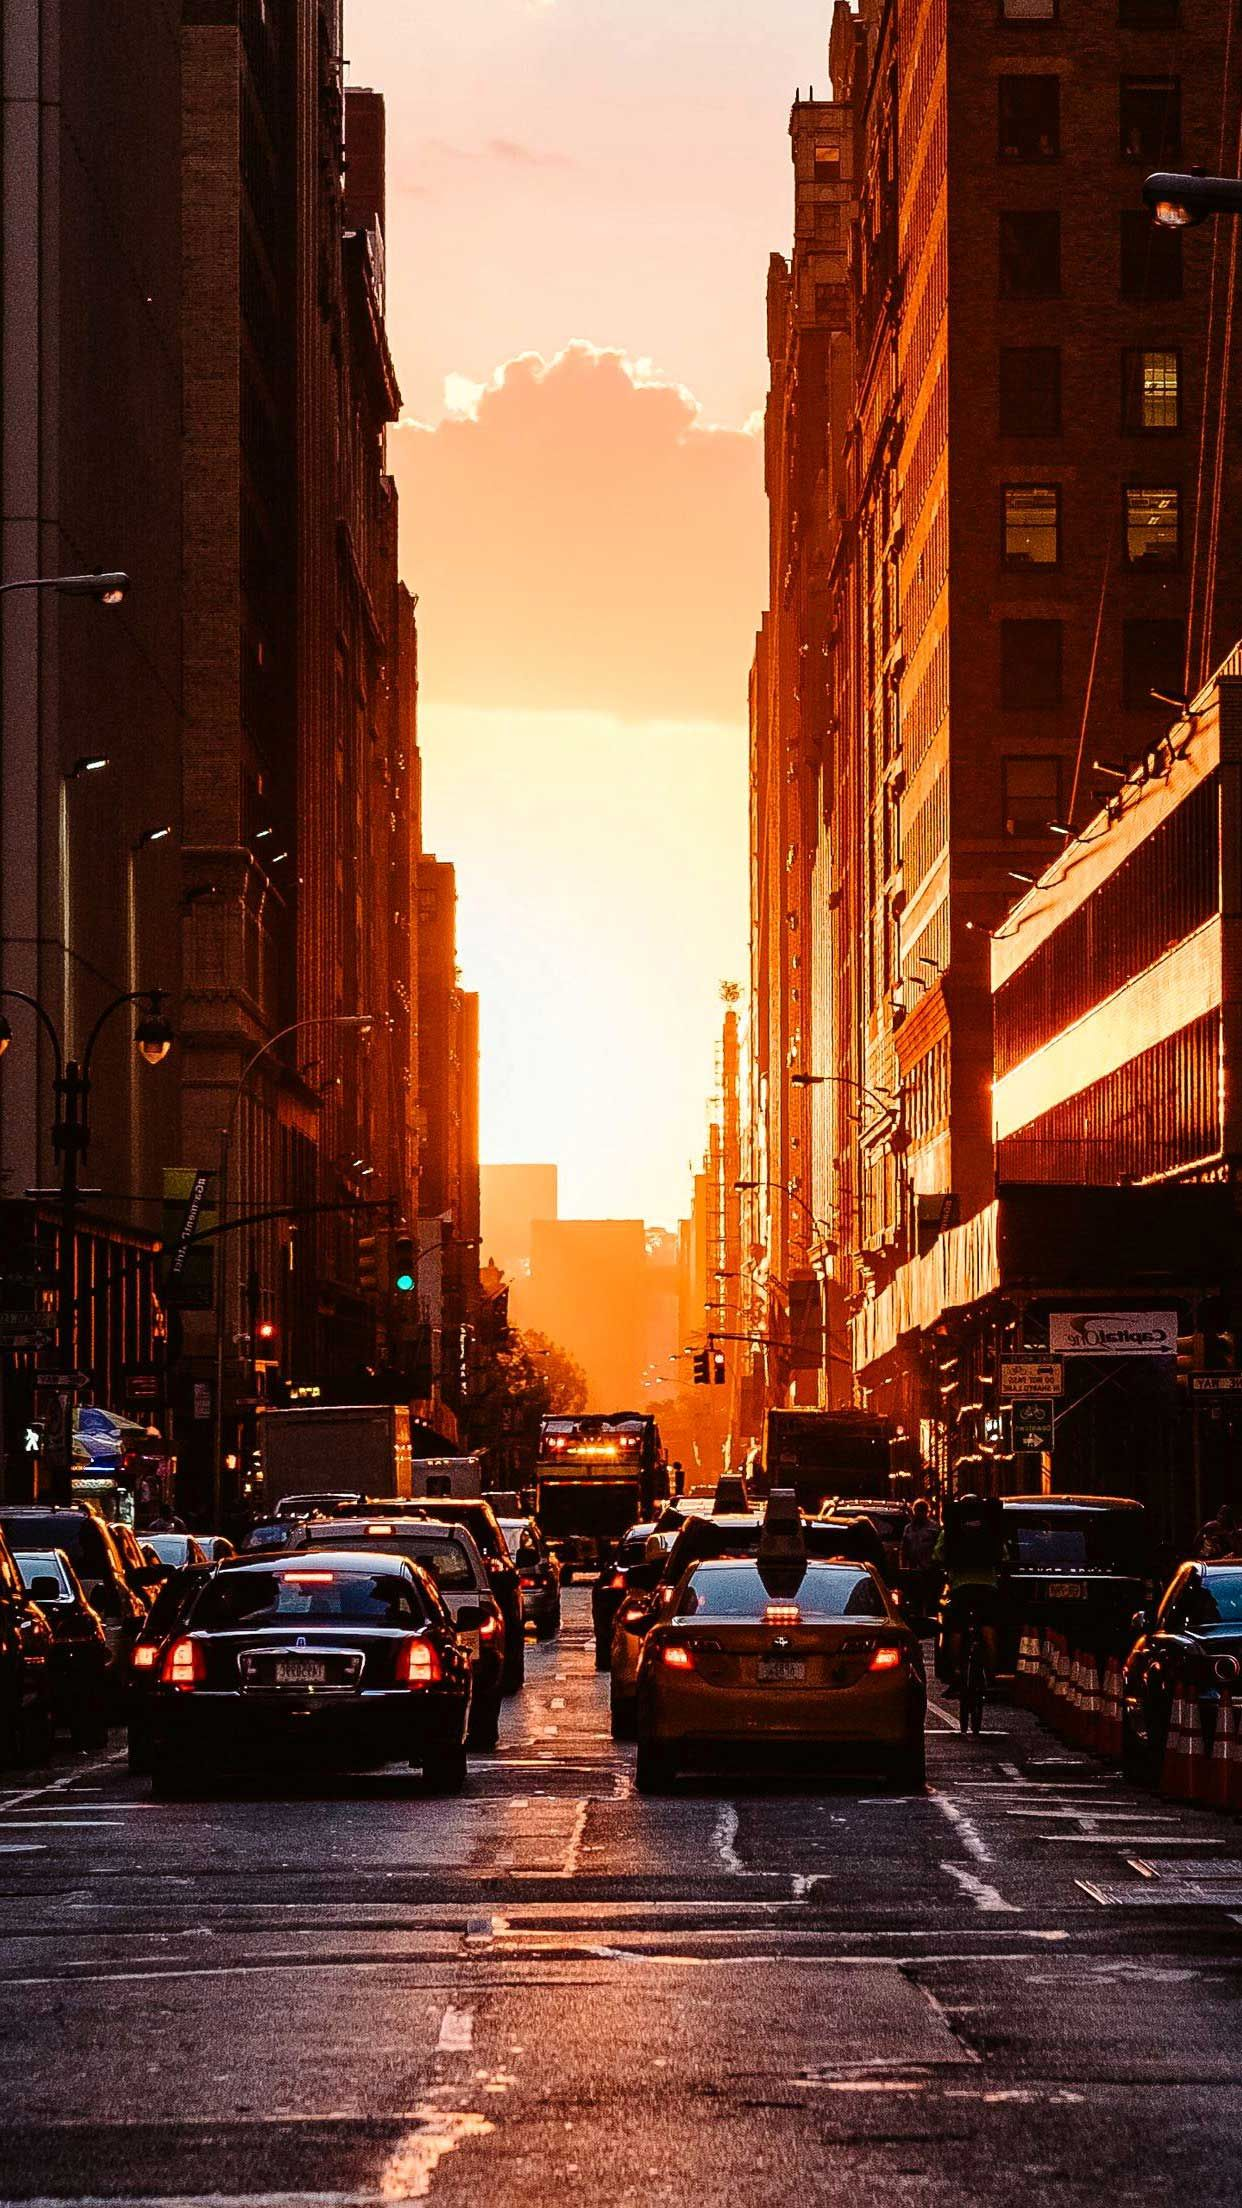 City Sunset New York Iphone Wallpapers Hd Sunset City New York Iphone Wallpaper New York Wallpaper